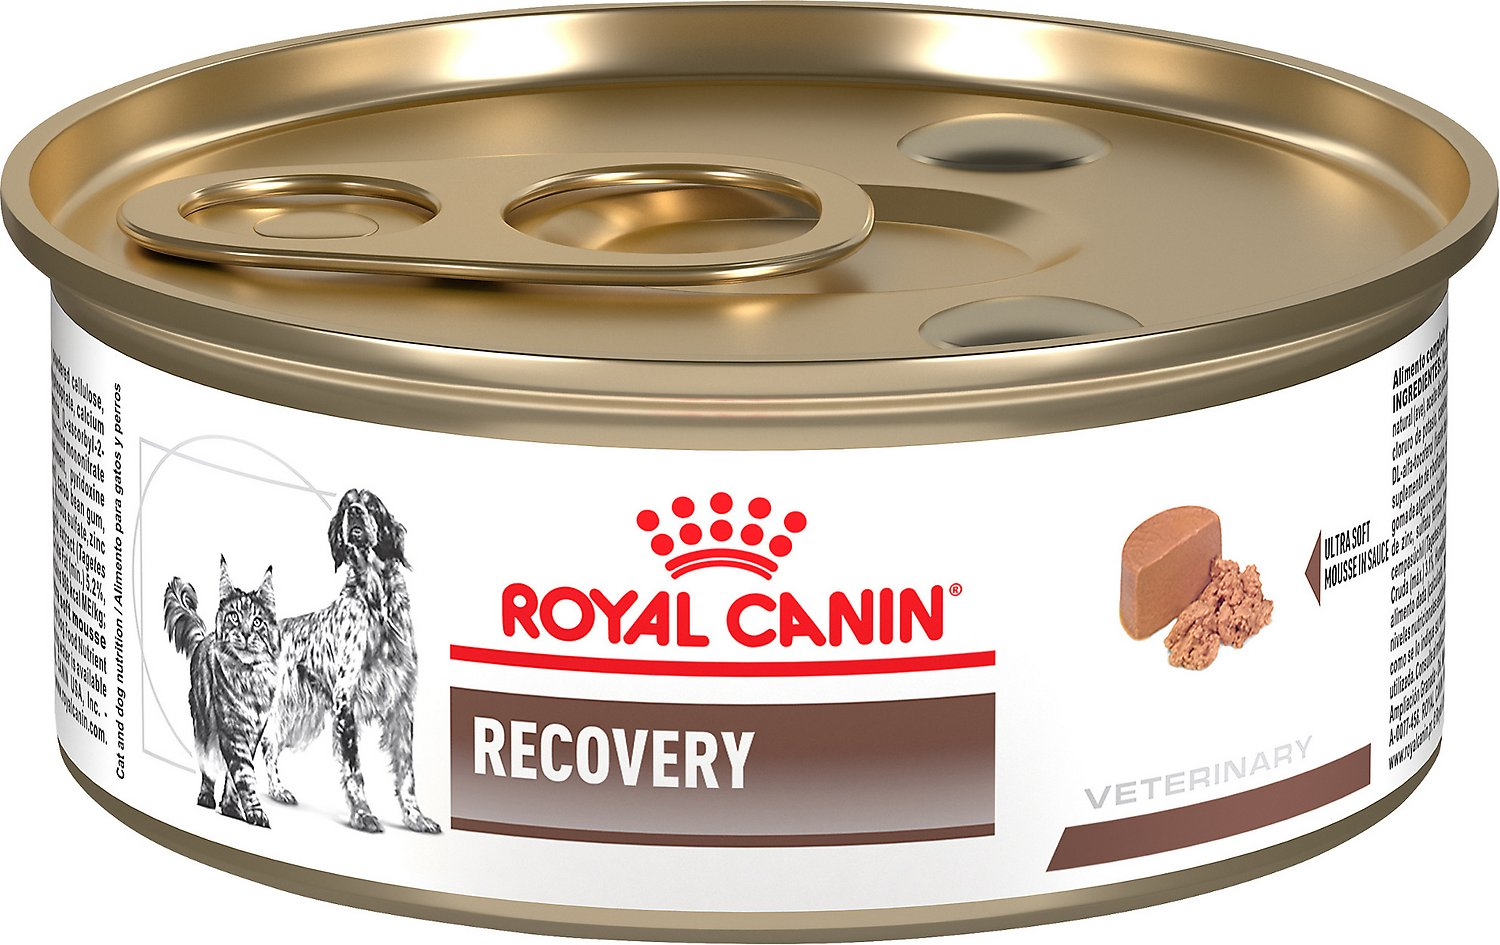 royal canin veterinary diet recovery rs canned dog cat food 5 8 oz case of 24. Black Bedroom Furniture Sets. Home Design Ideas